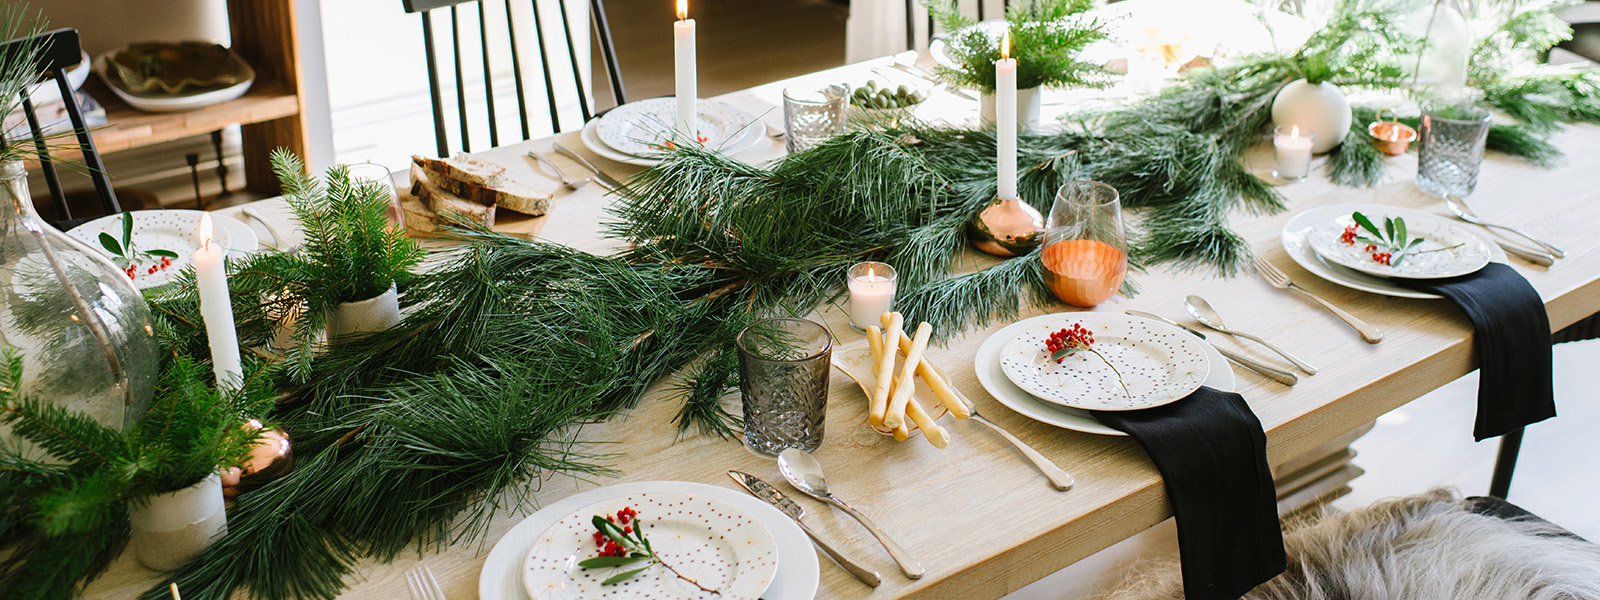 Entertaining - Tablescaping